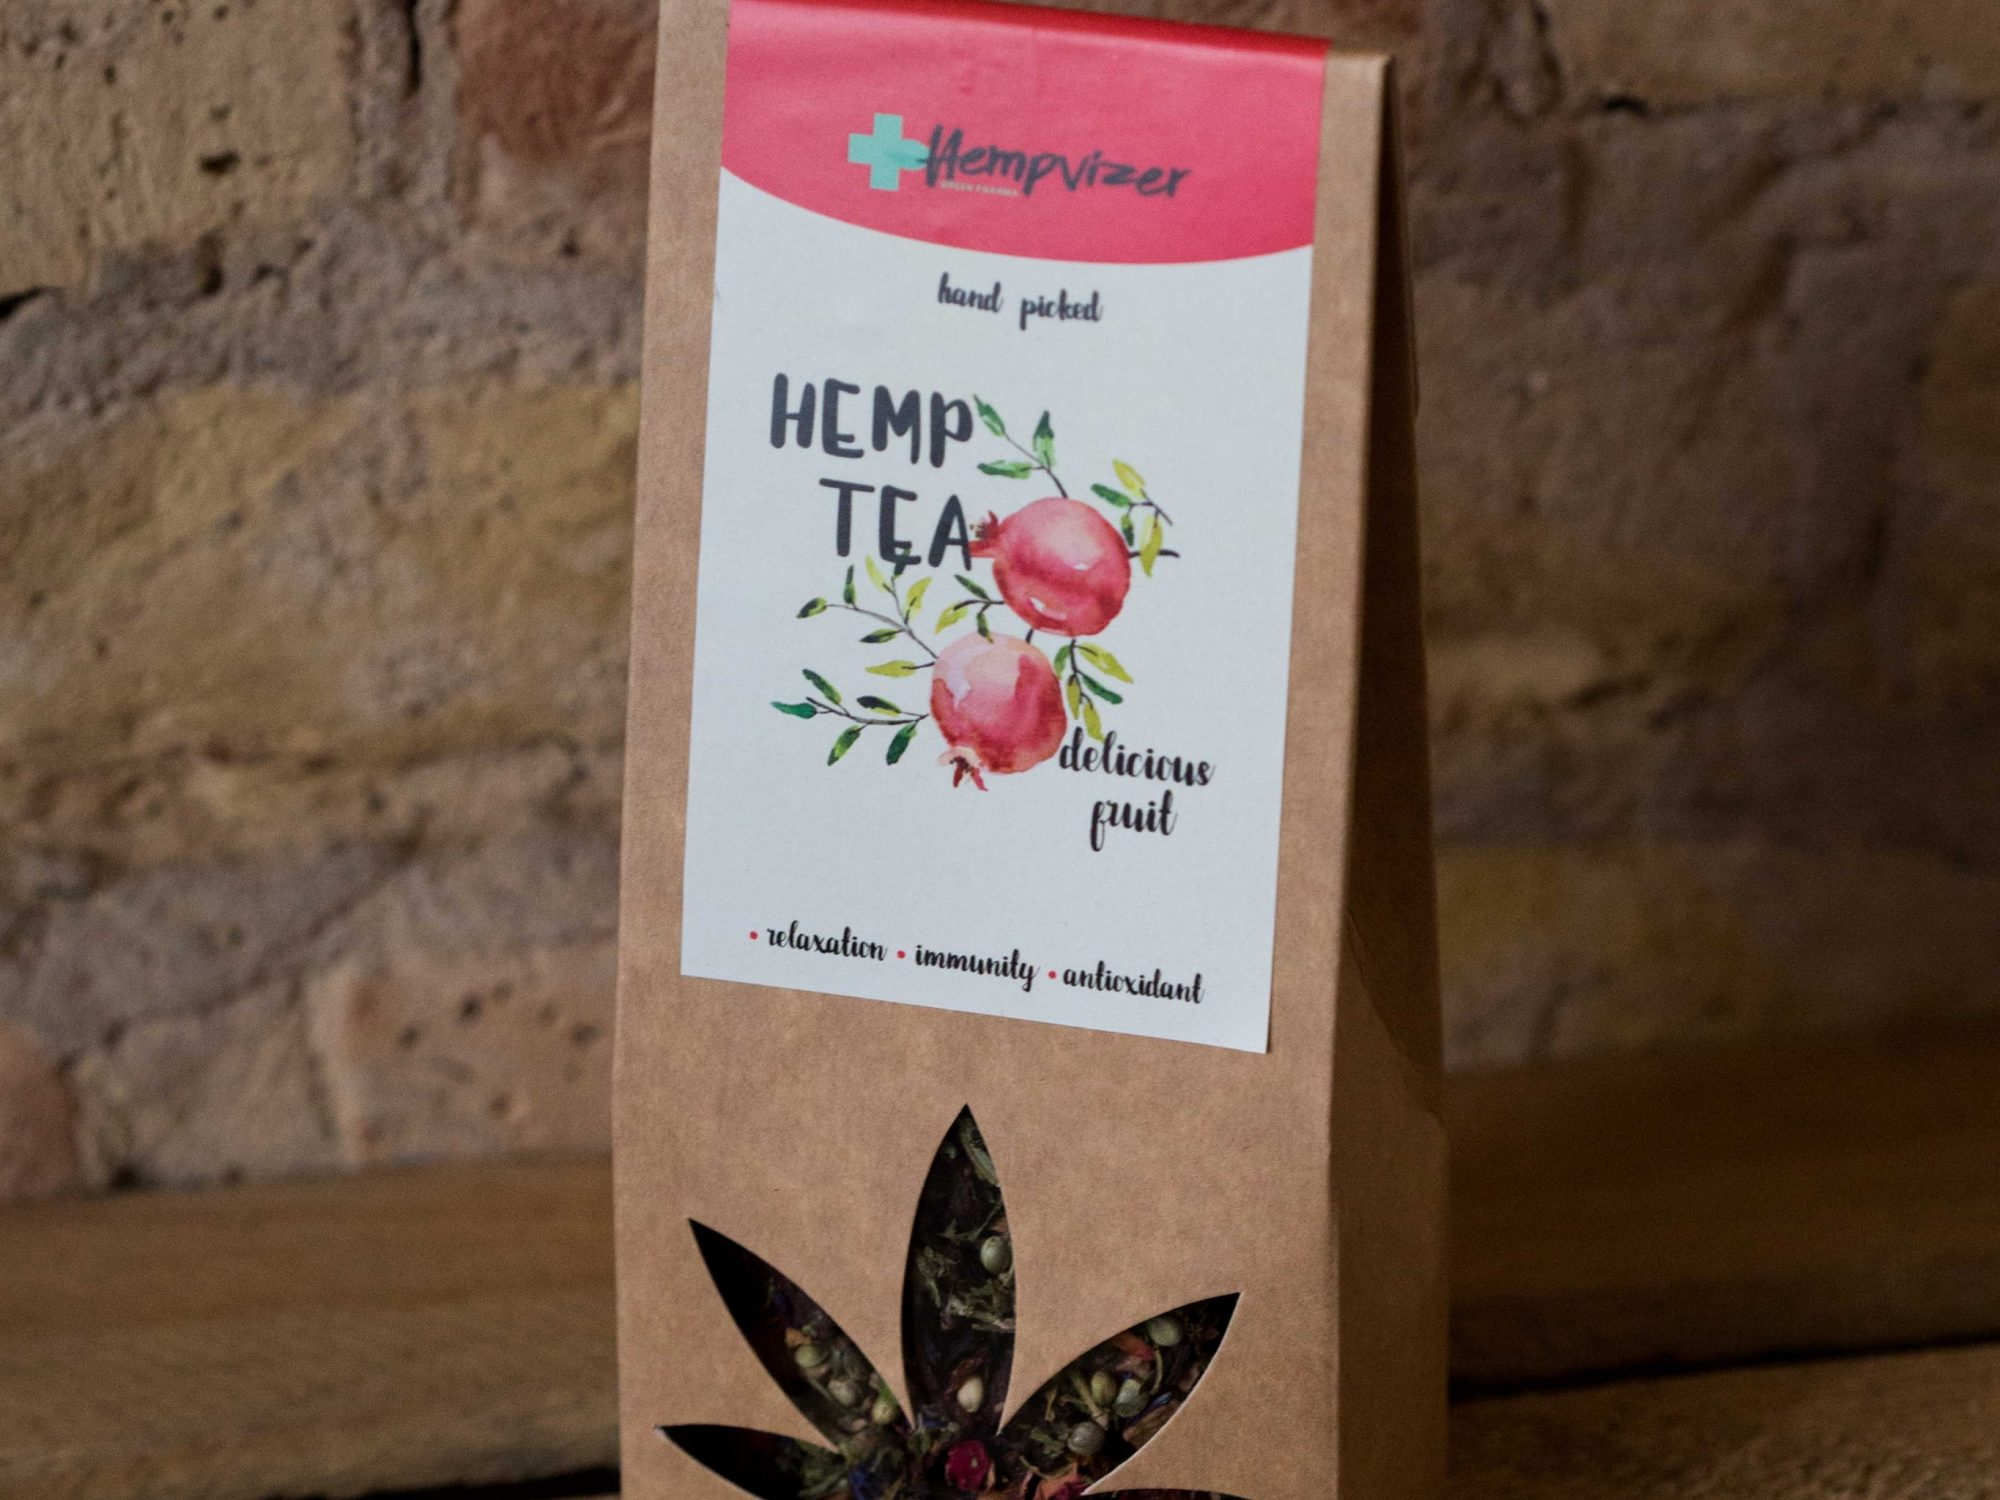 Hempvizer Hemp Tea with fruits 50g